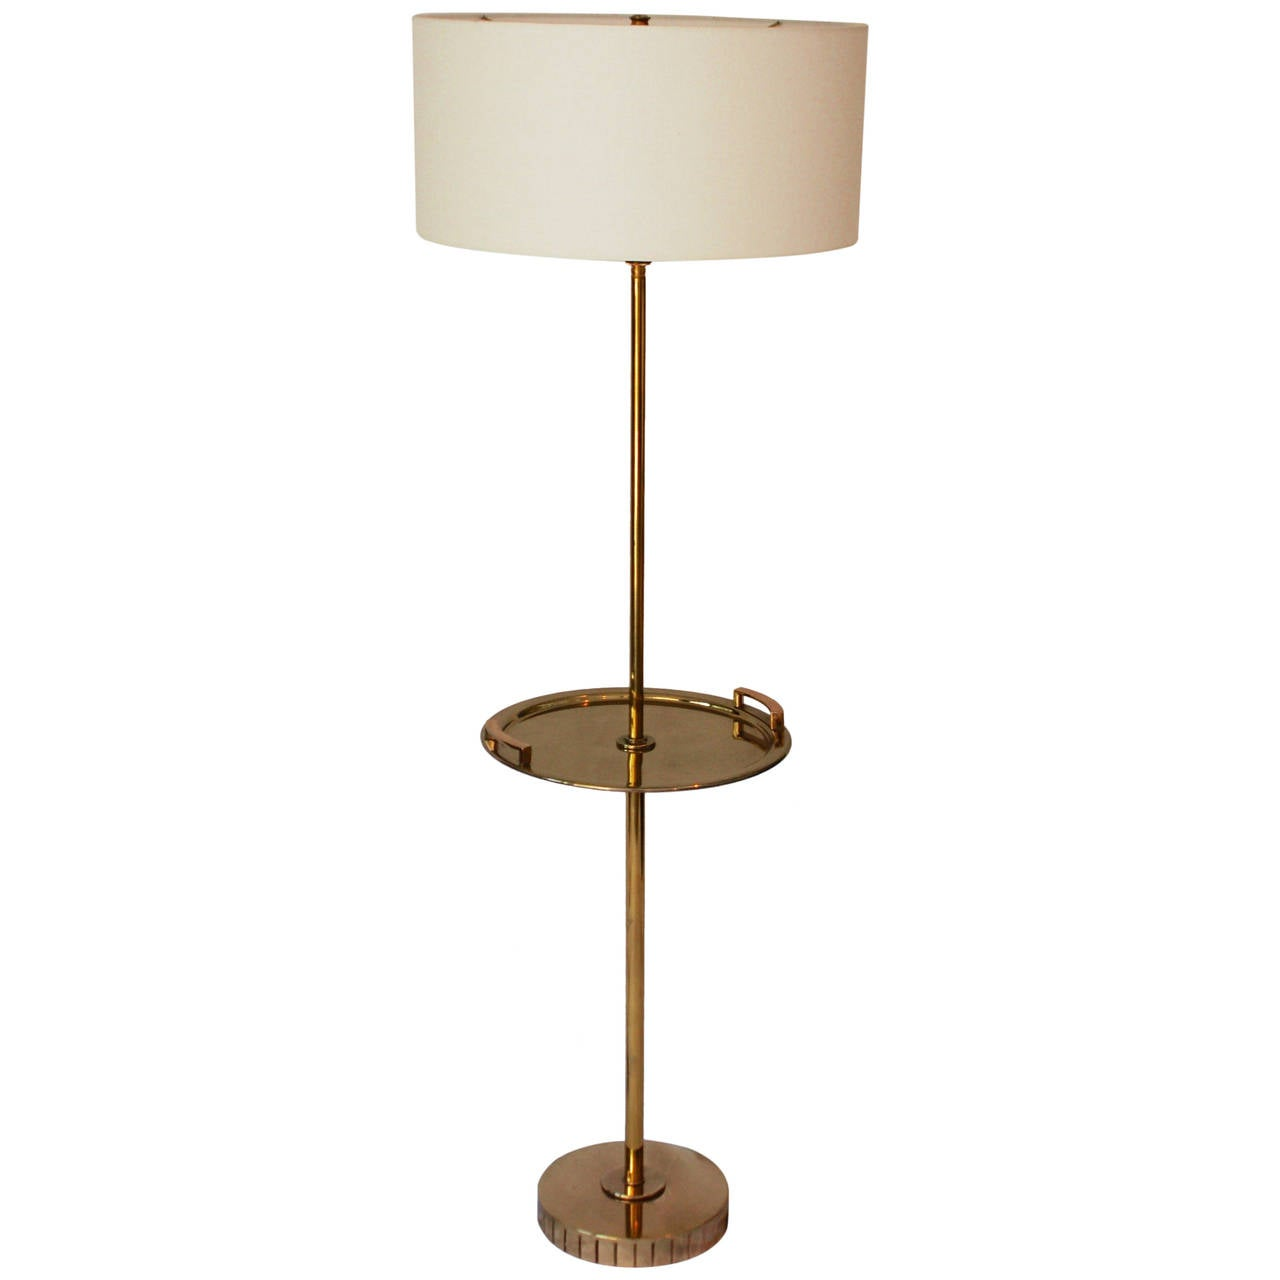 Brass Floor Standing Lamp with Brass Tray Table at 1stdibs